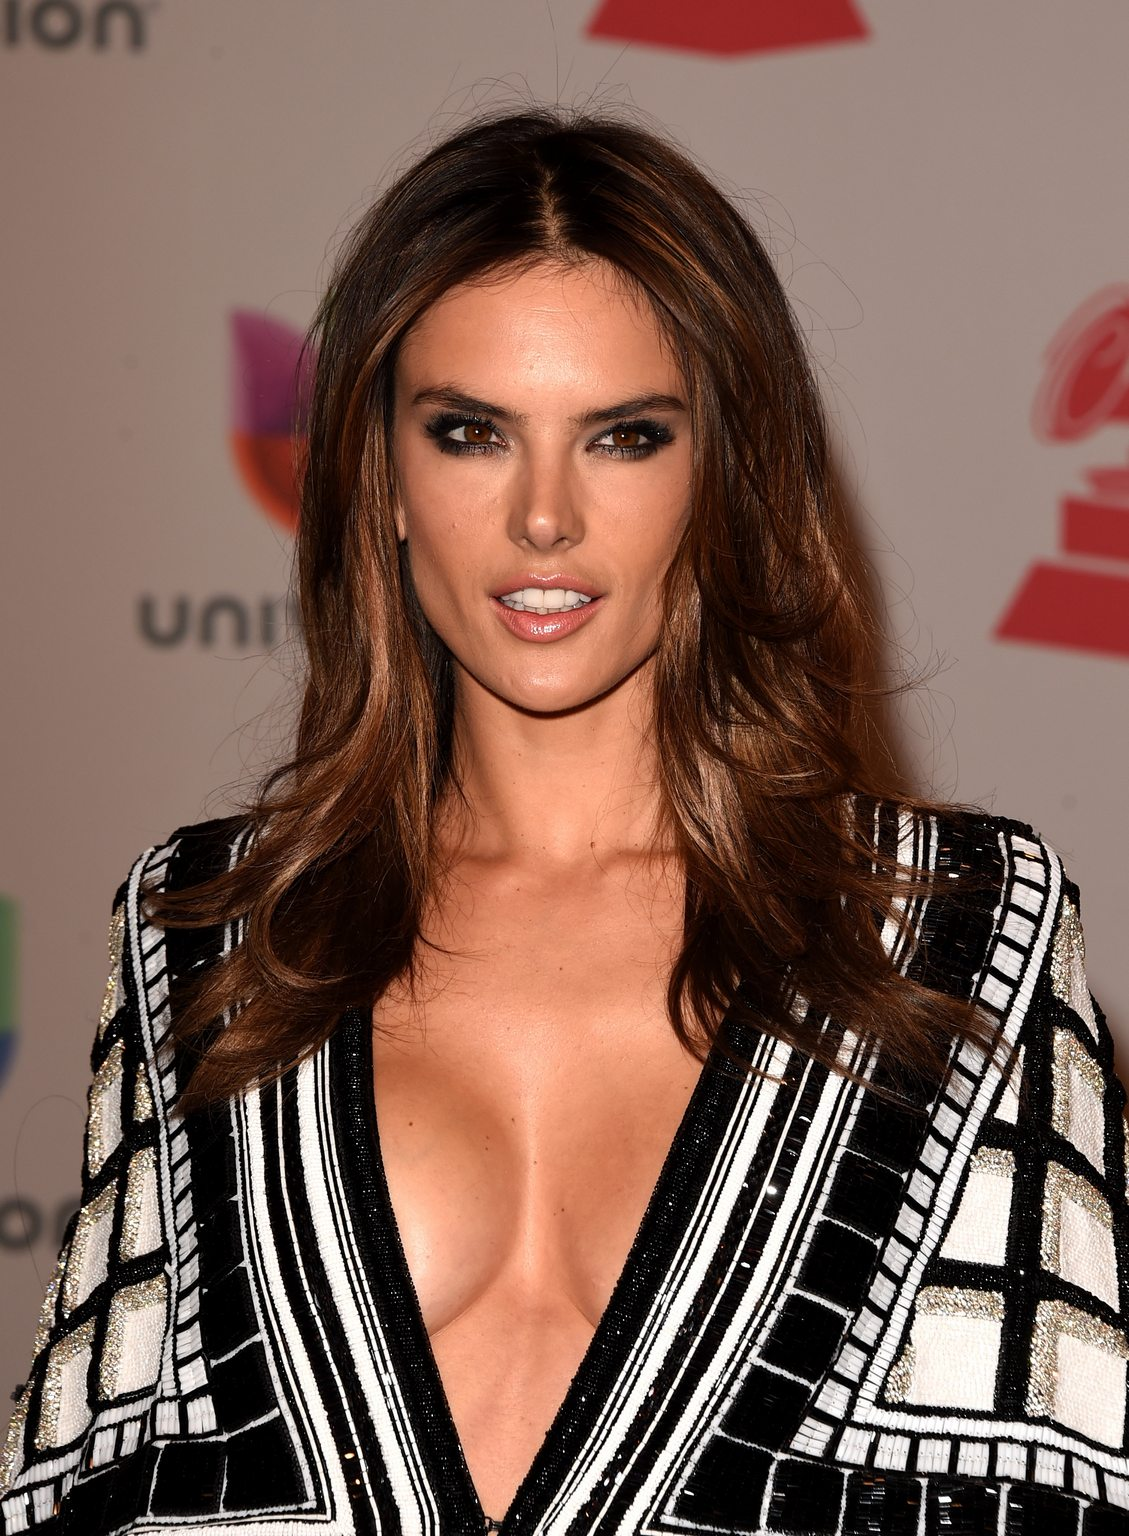 alessandra-ambrosio-topless-wallpapers